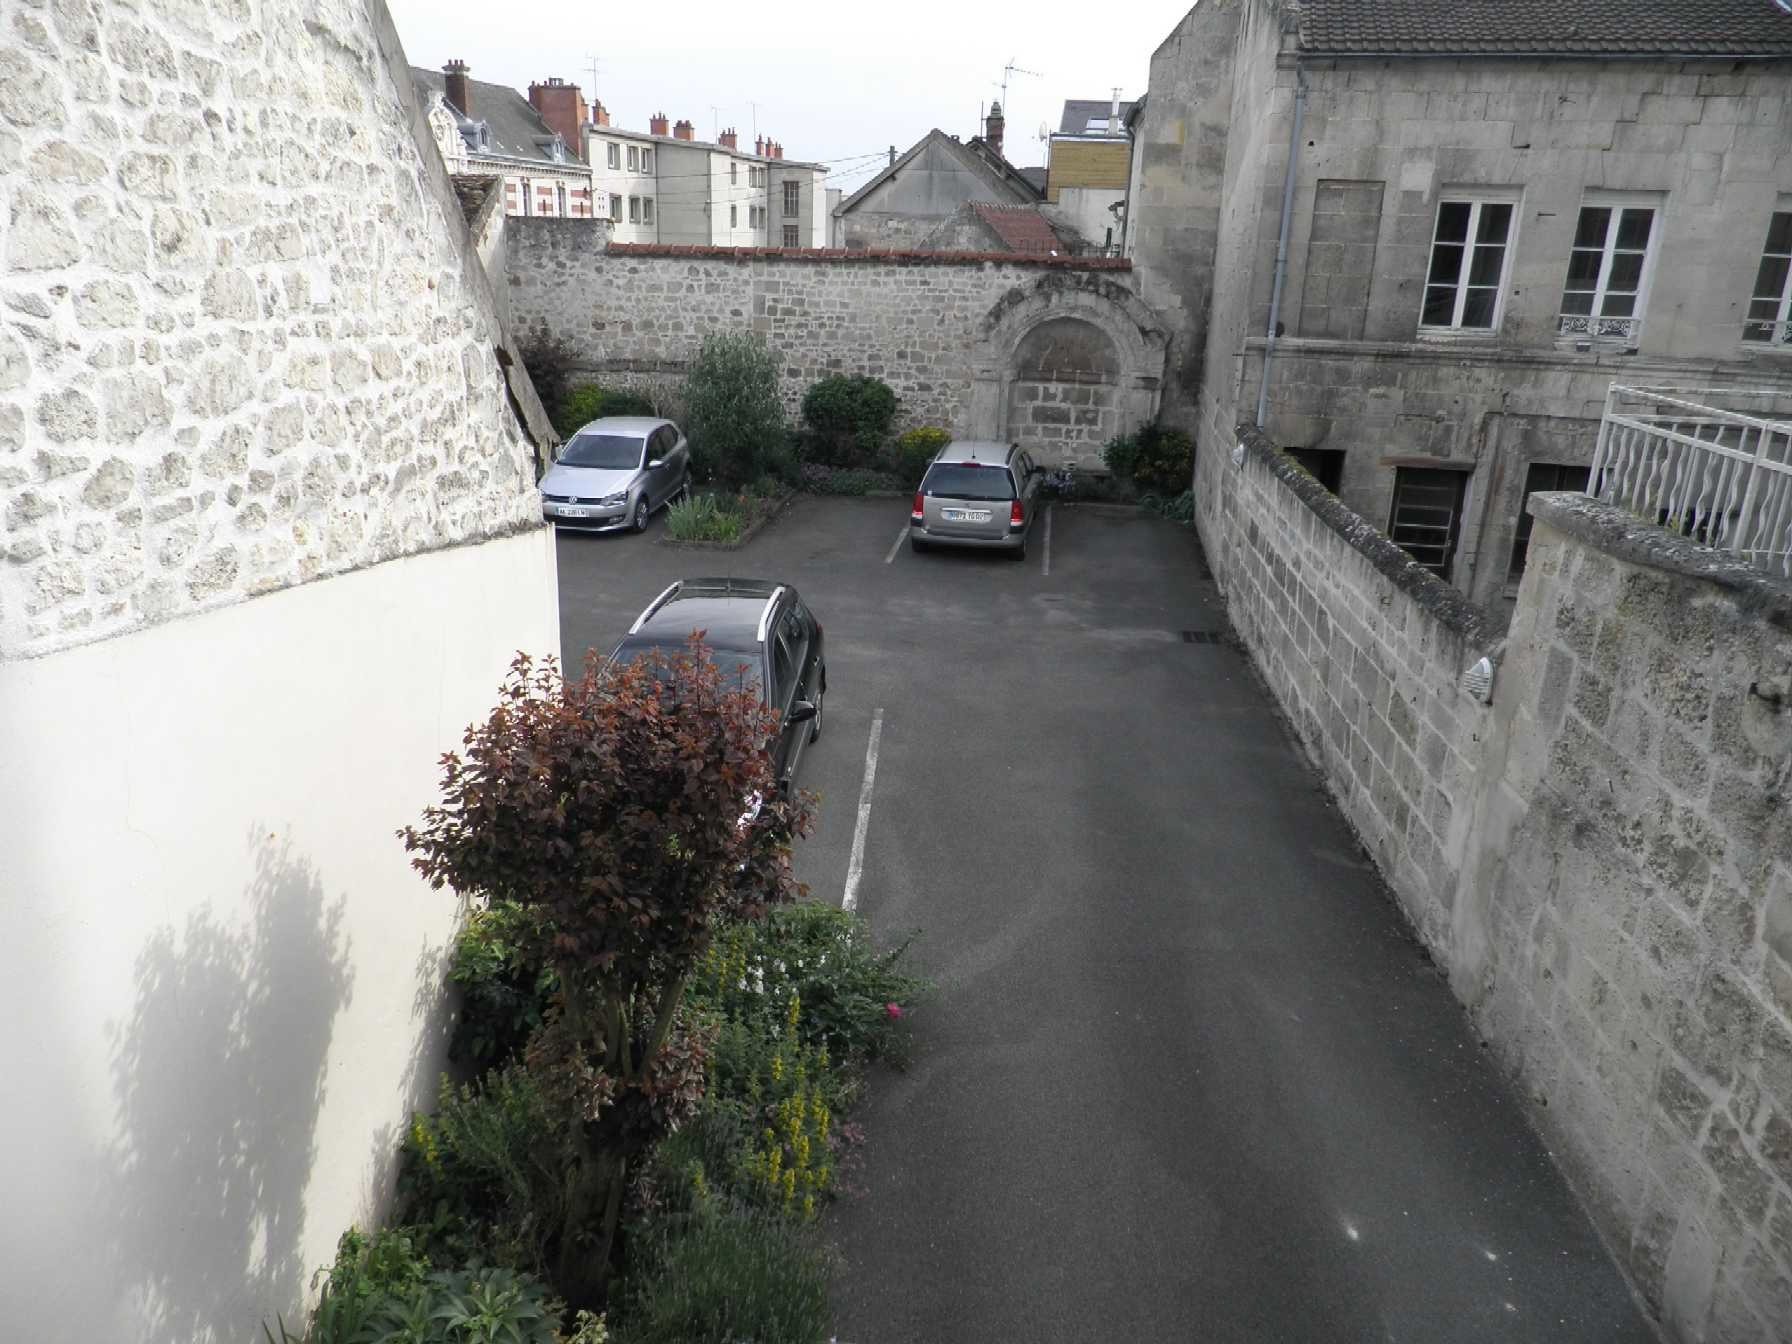 VILLERS COTTERETS, Appartement F2 de 40m2